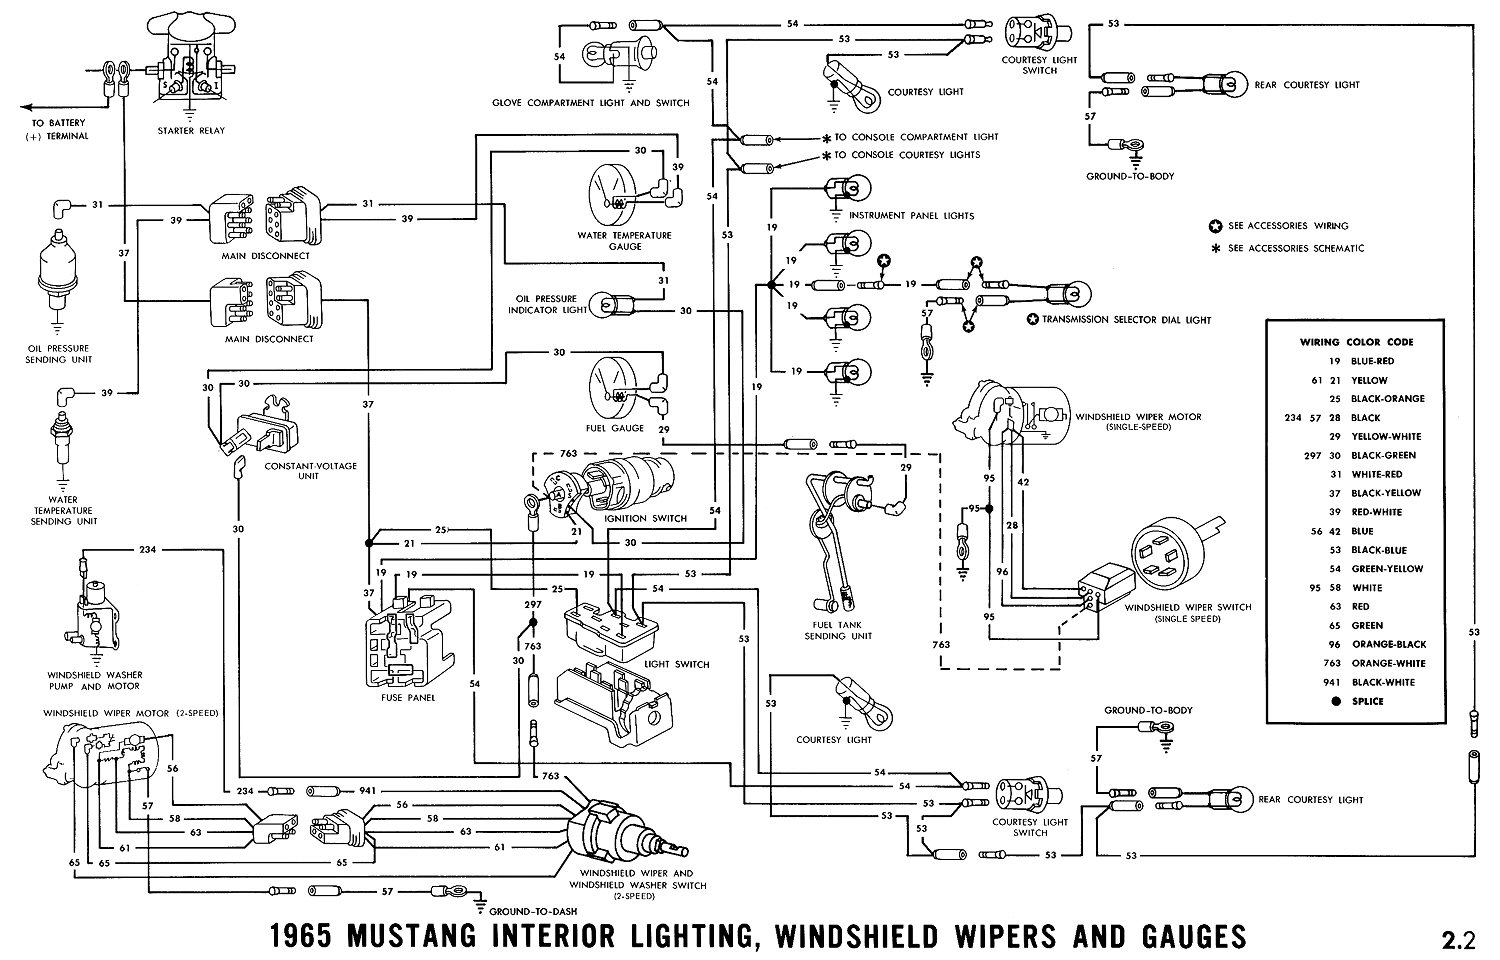 hight resolution of 1965 mustang wiring diagrams average joe restoration 1965 mustang instrument panel wiring diagram 65 mustang gauge wiring diagram